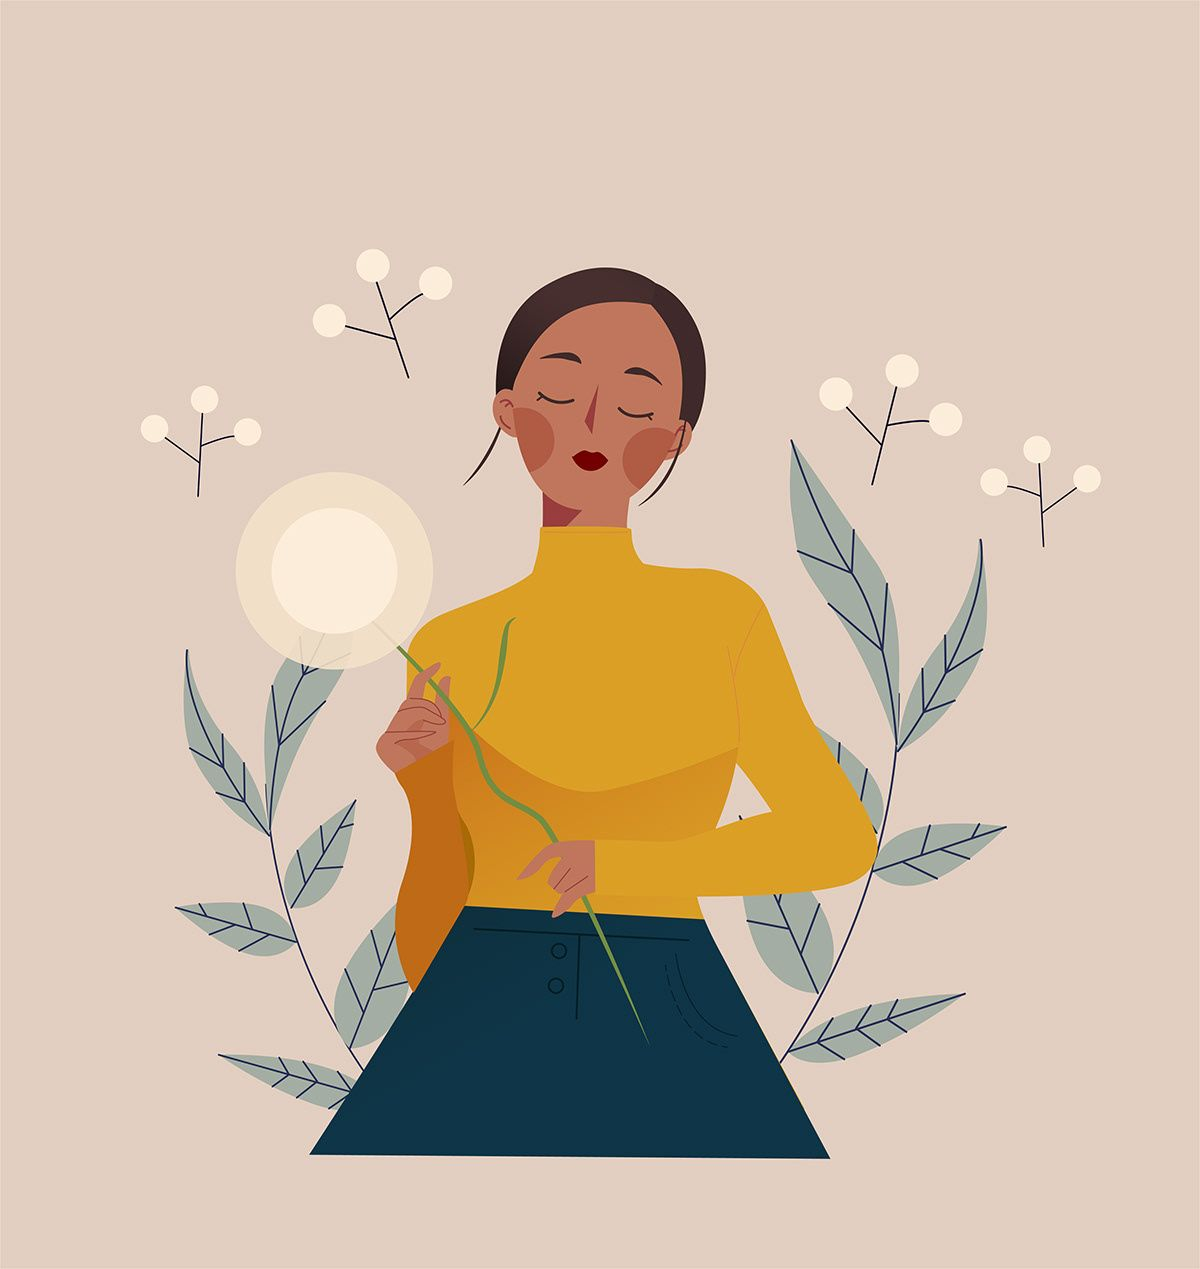 Serenity Illustration Series on Behance  #dandelionillustration #womanillustration #vectorillustration #elegantillustration #minimalist #poc #blackwoman